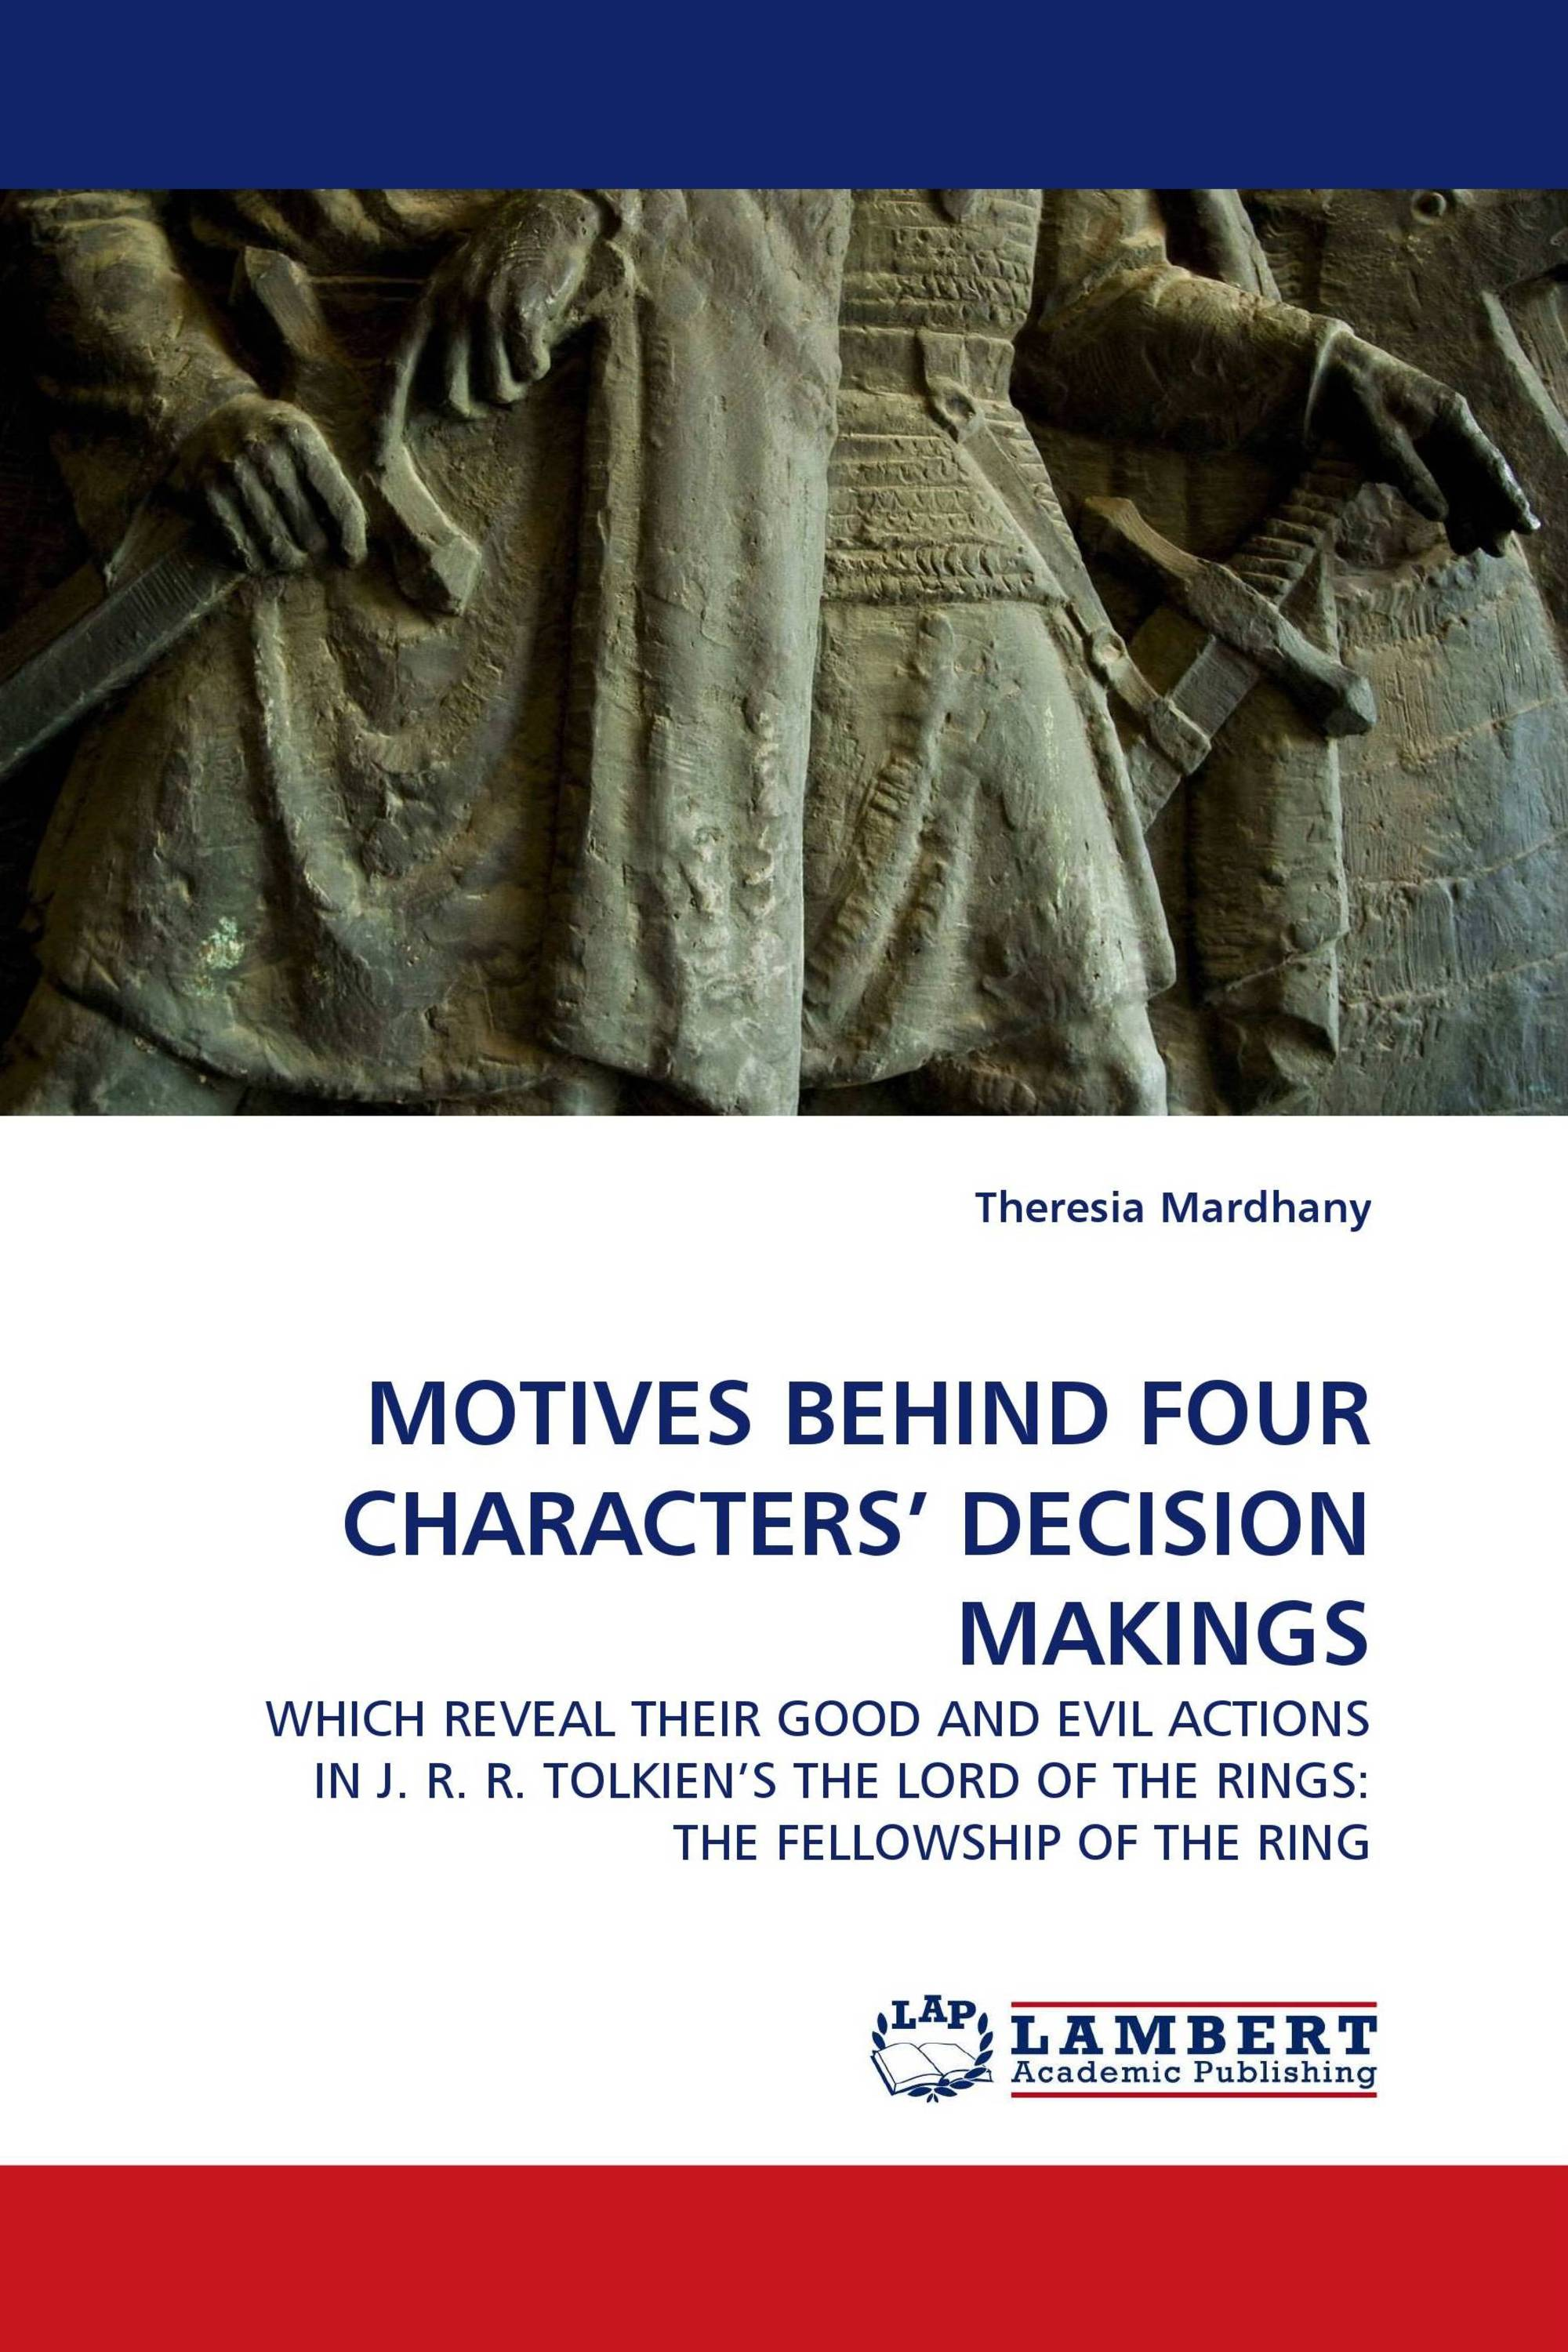 MOTIVES BEHIND FOUR CHARACTERS' DECISION MAKINGS